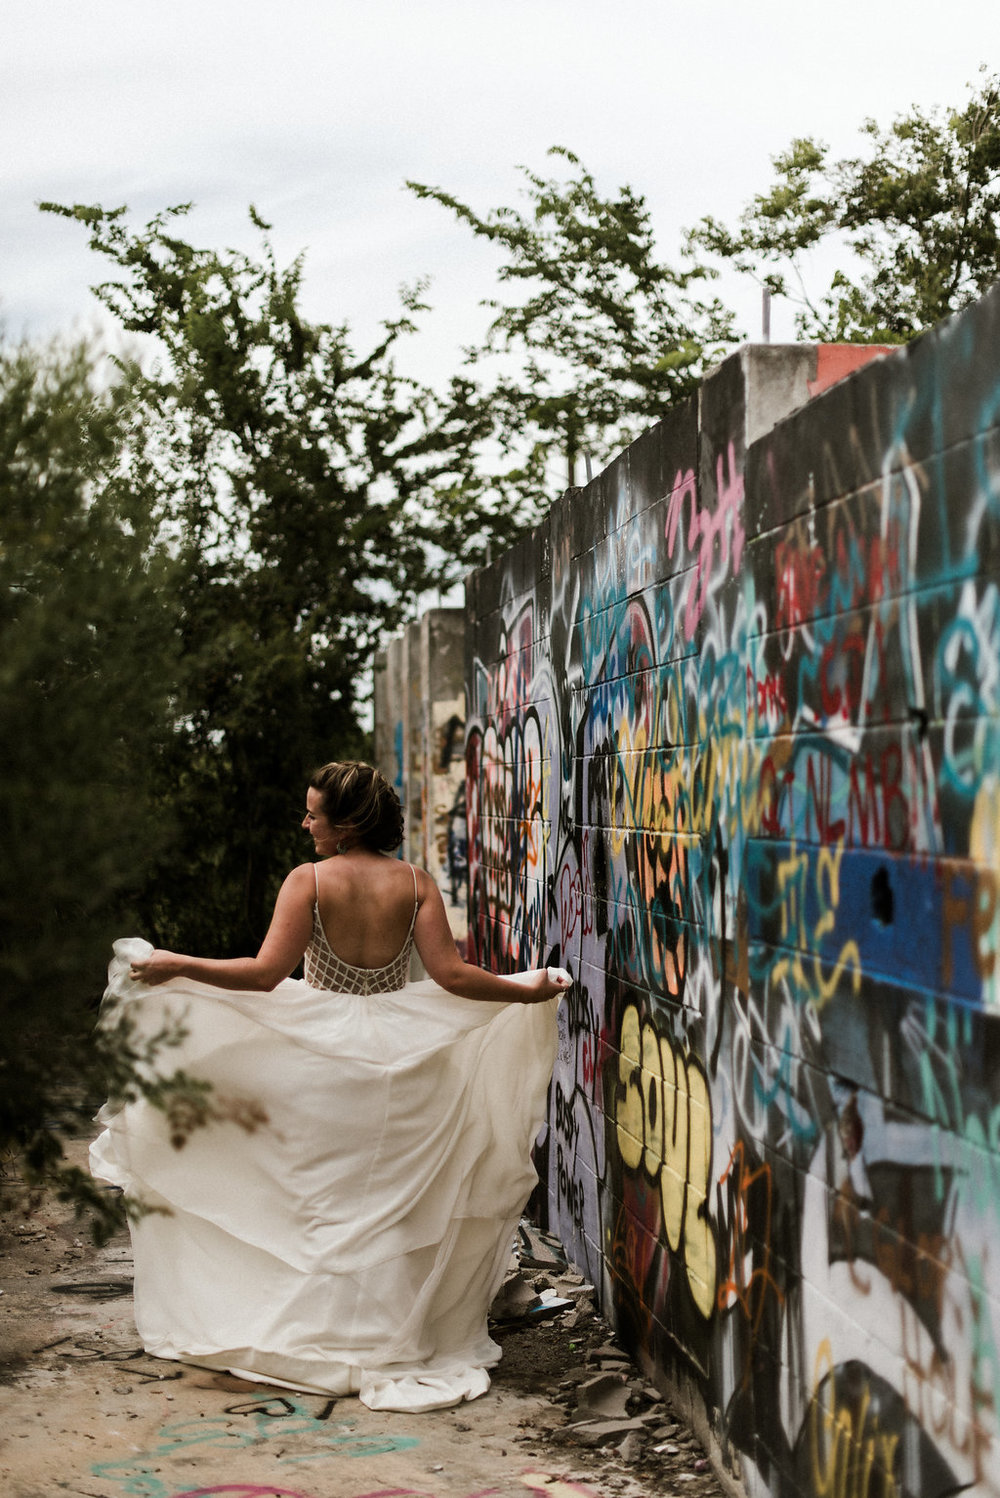 Savannah-Stonehenge-lauren-imus-photography-savannah-wedding-photographer-blush-by-hayley-paige-honeycomb-ivory-and-beau-bridal-boutique-savannah-wedding-dresses-savannah-bridal-boutique-savannah-wedding-planner-savannah-florist-graffiti-wedding-9.jpg